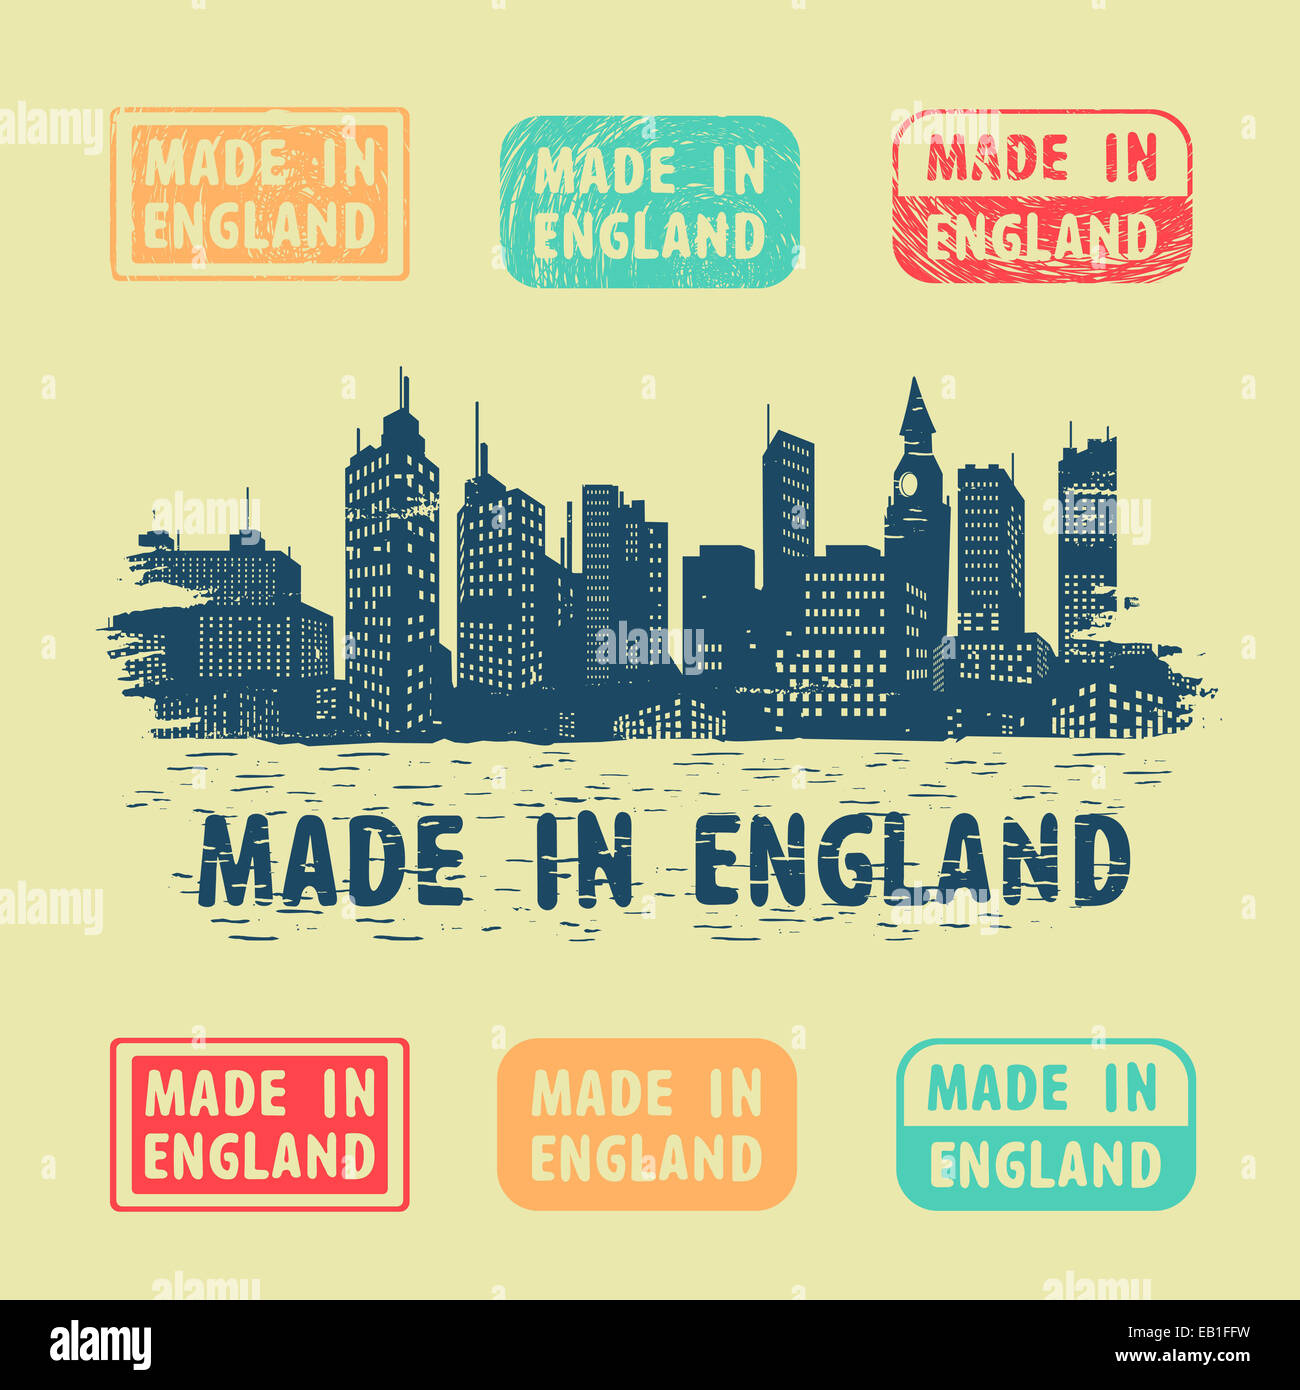 Label Made in England - Stock Image